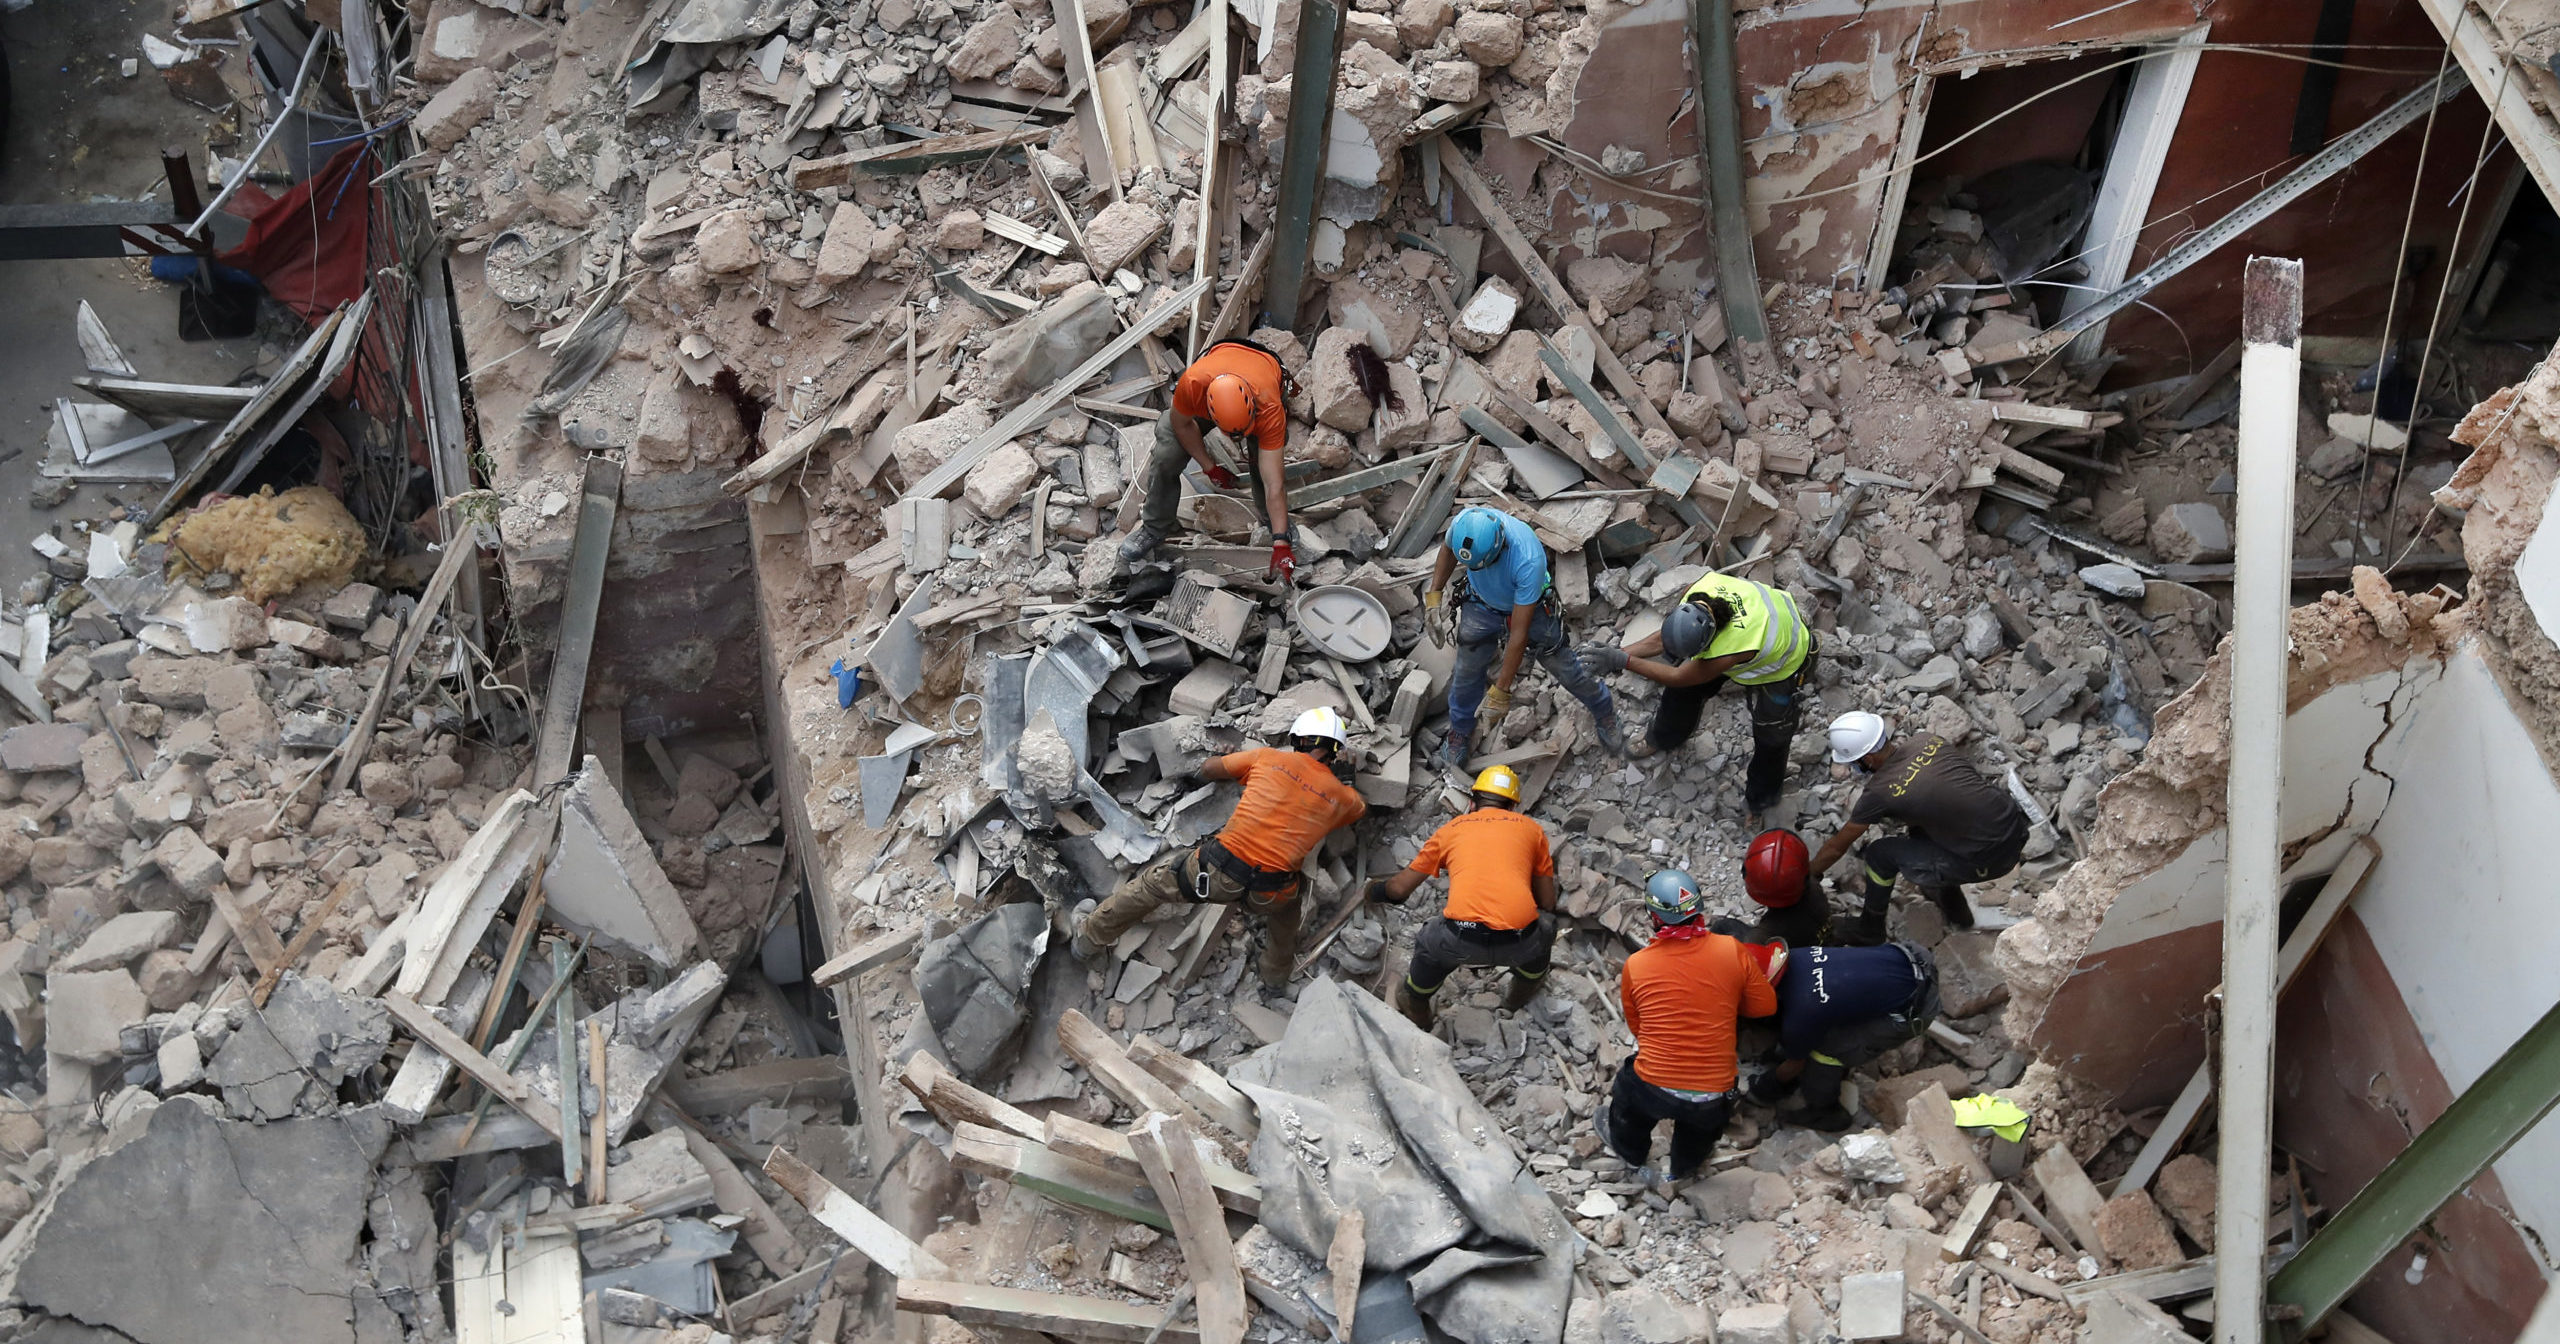 Lebanese and Chilean rescuers search in the rubble of a collapsed building after getting signals of a possible survivor on Sep. 4, 2020, in Beirut, Lebanon. A pulsing signal was detected from under the rubble of a Beirut building that collapsed during the horrific port explosion in the Lebanese capital last month, raising hopes there may be a survivor still buried there.